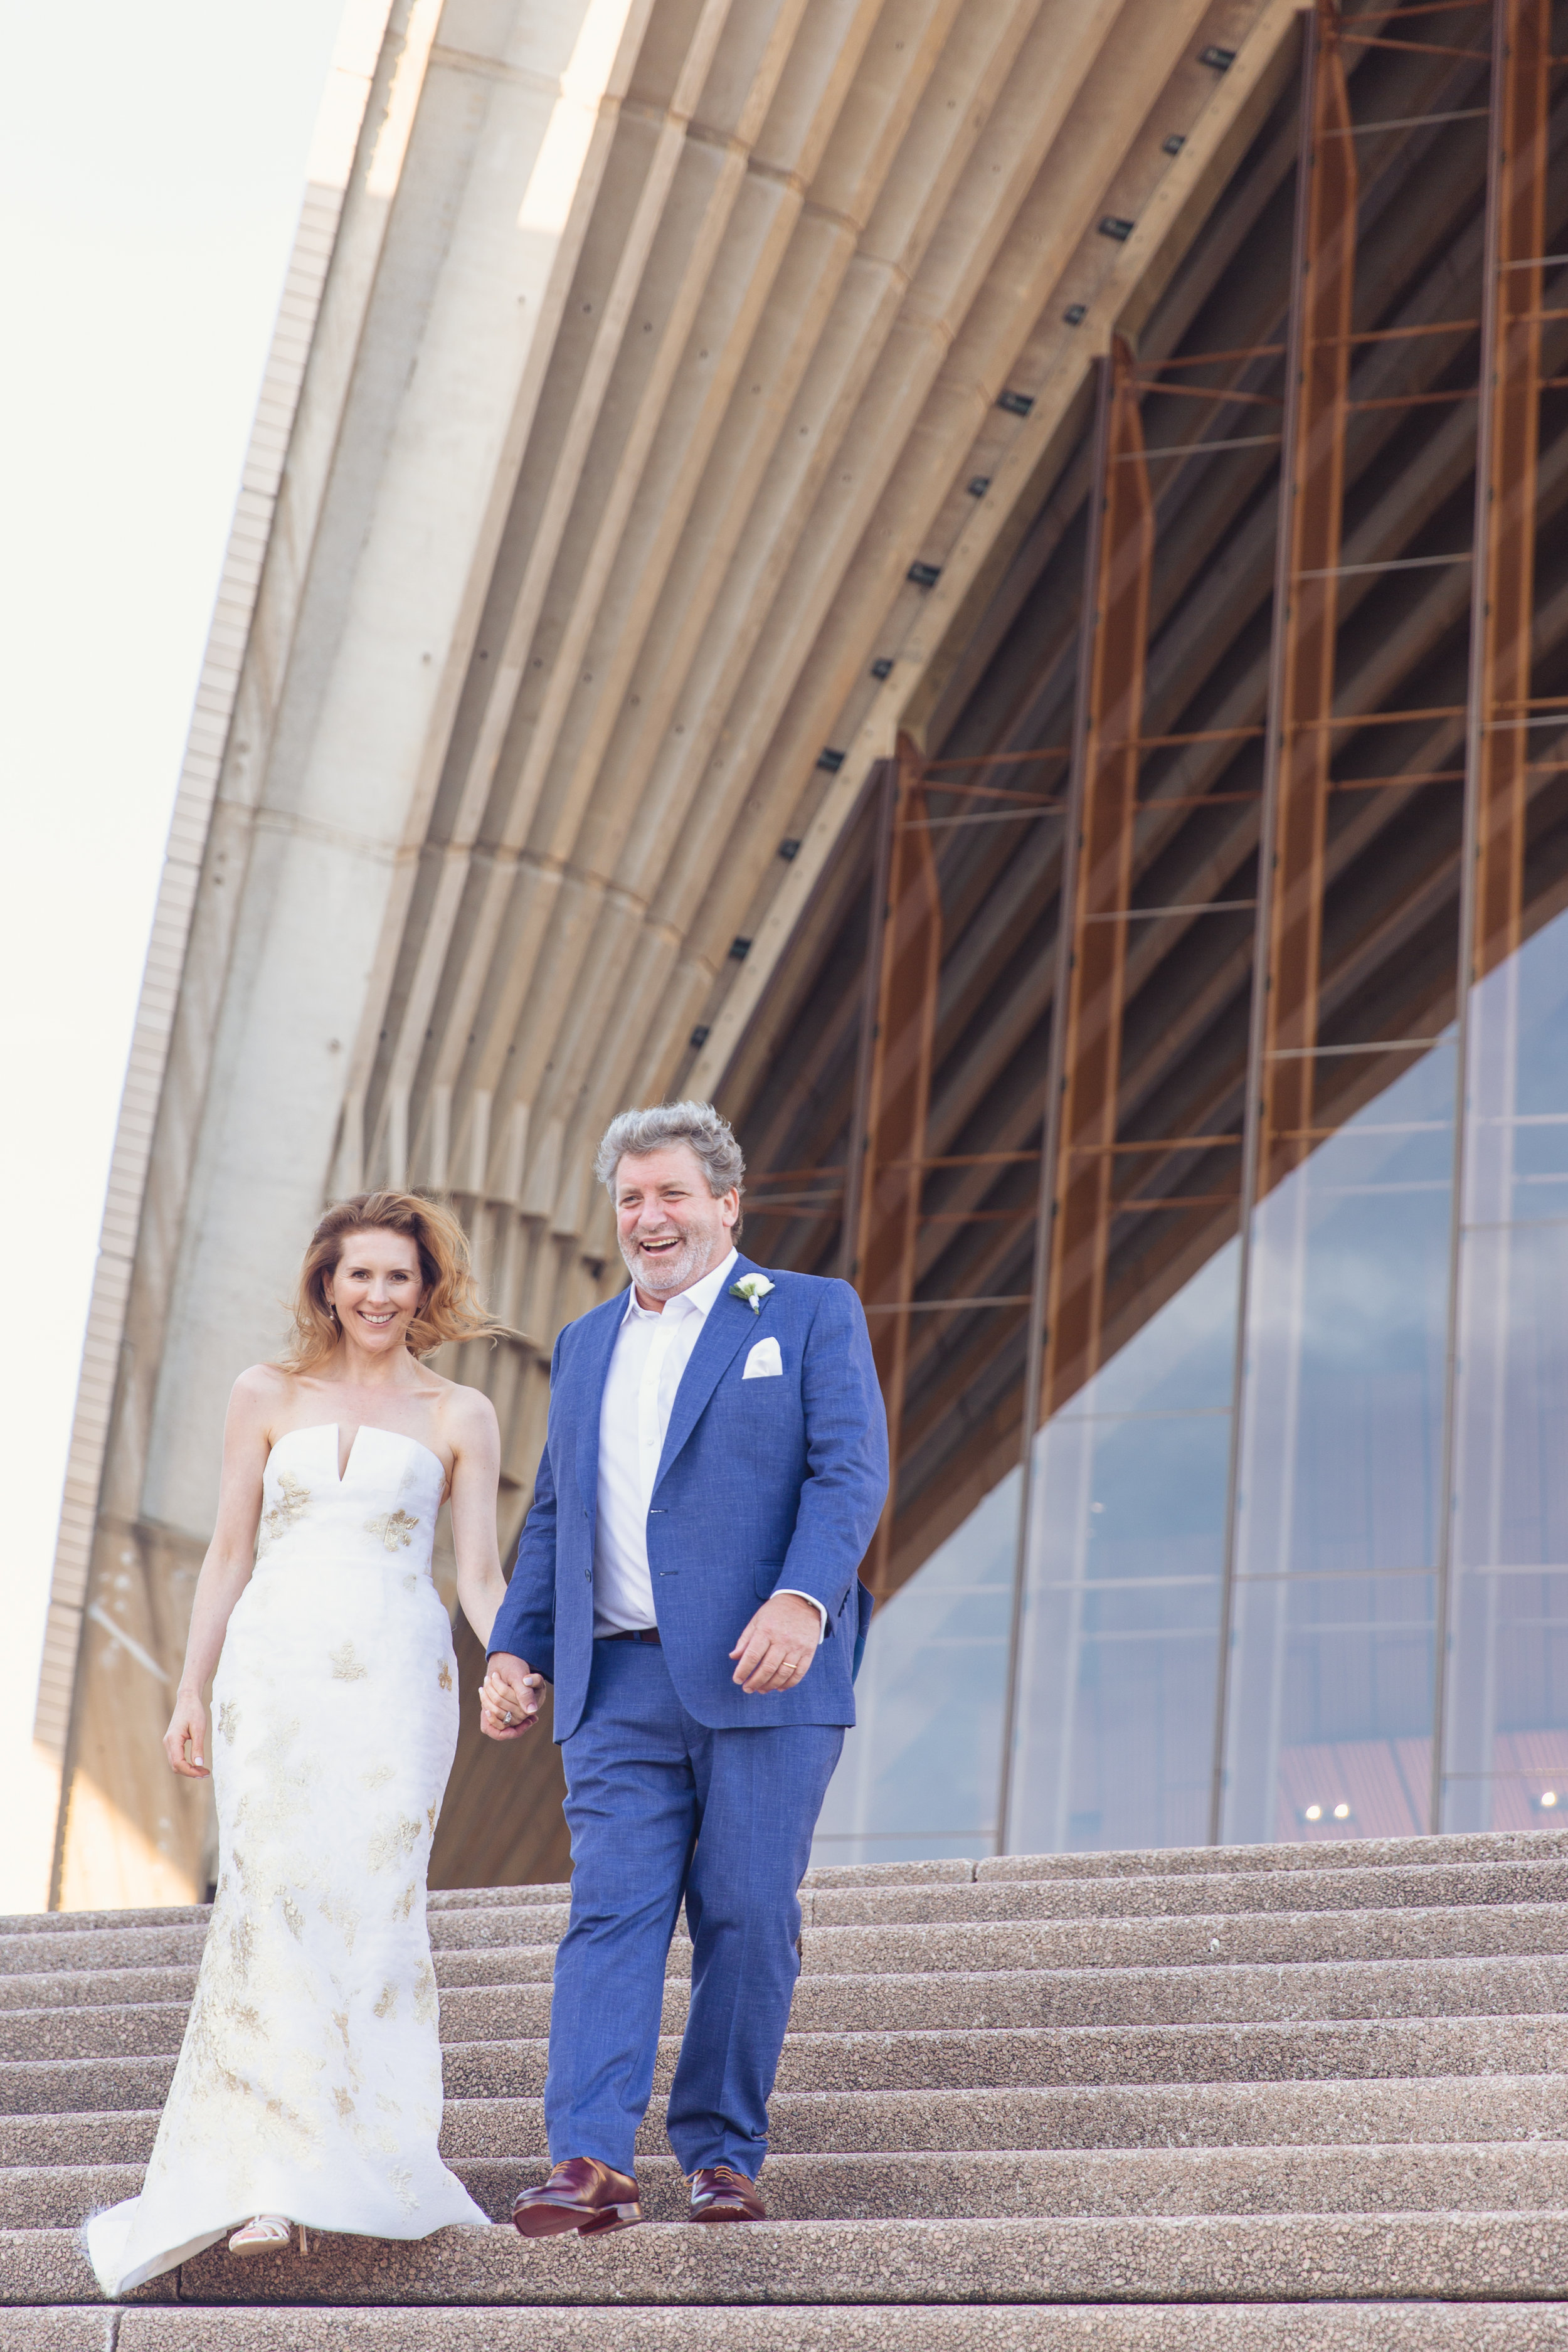 Photographed With Love Candid Wedding Photography Opera House